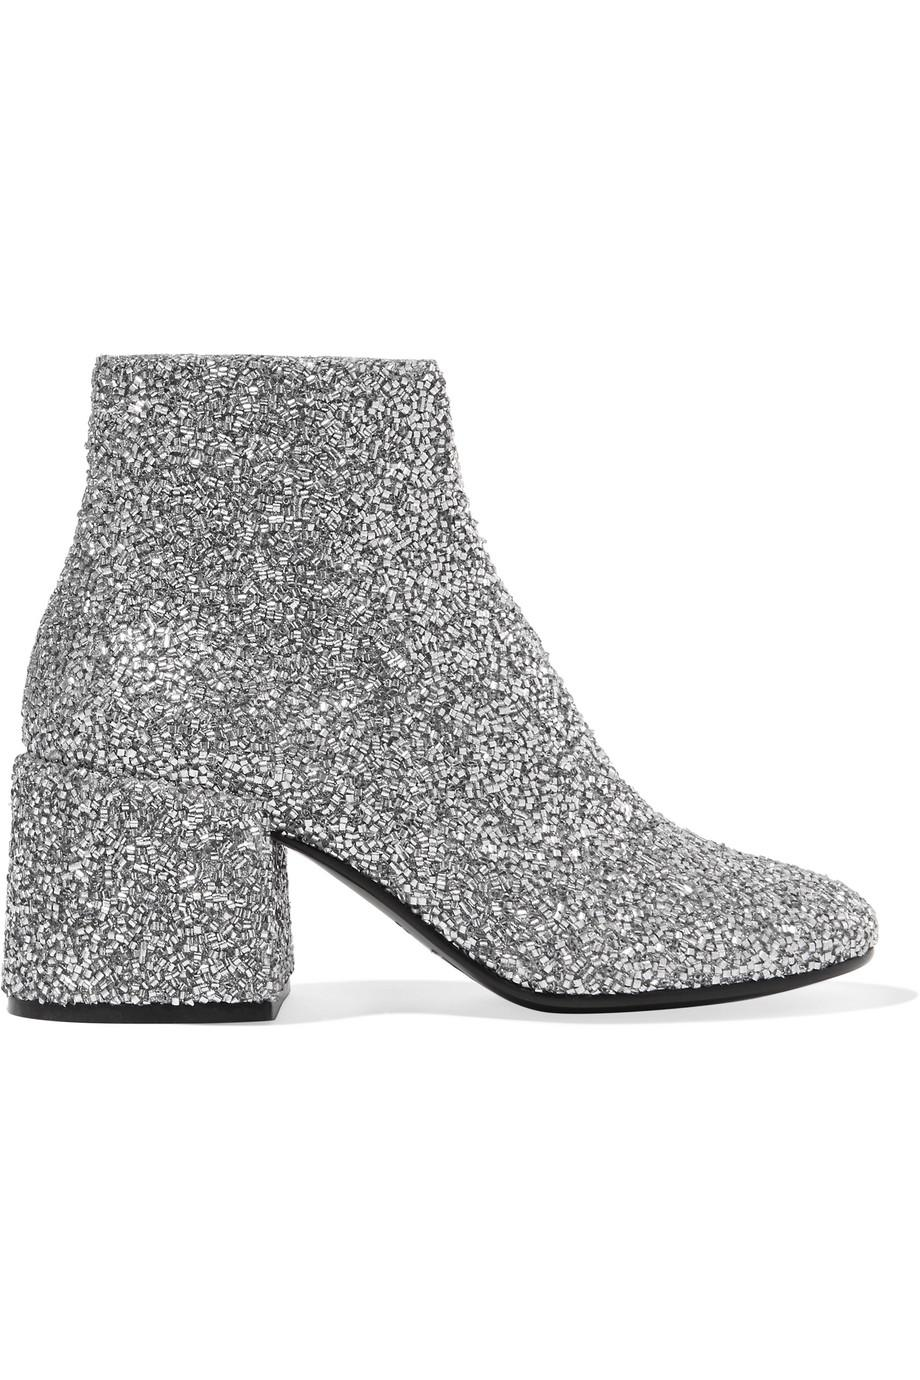 MM6 MAISON MARGIELA Bead-embellished ankle boots Browse Cheap Price Fake Cheap Online Cheap Sale Low Shipping Cheap Price Discount Authentic FF1QE6rl